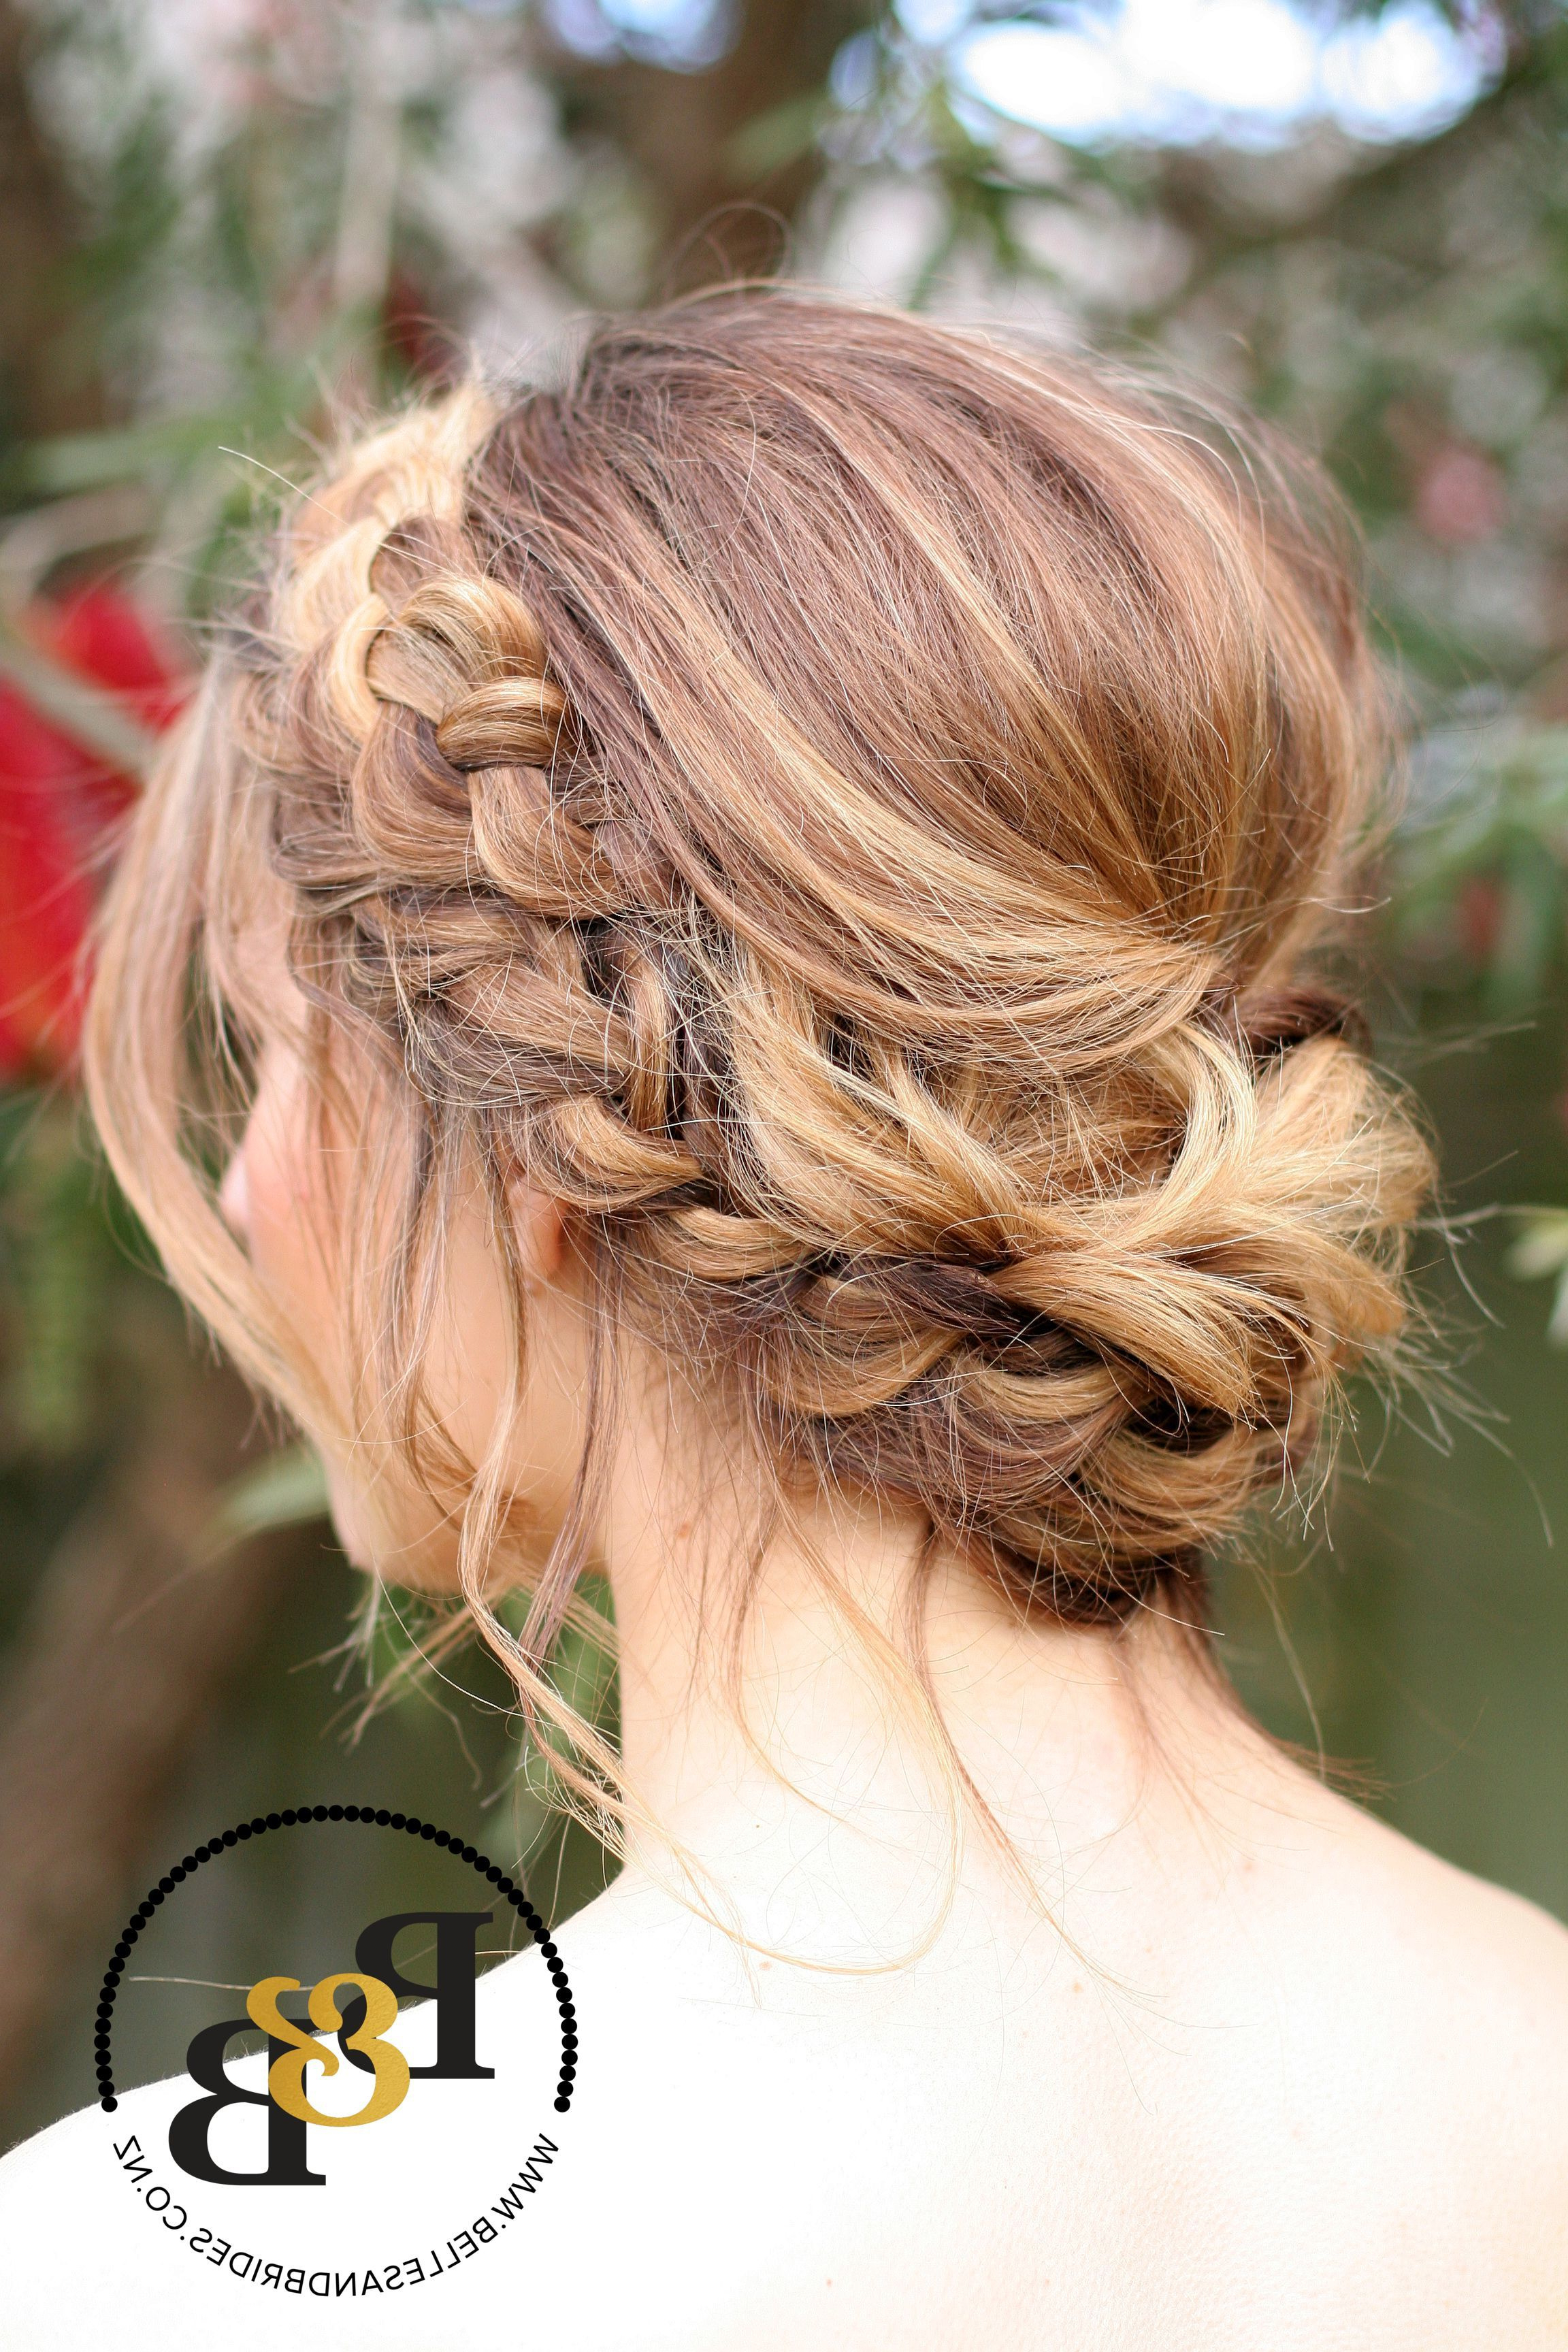 Preferred Braided Chignon Hairstyles Intended For Hairstyles : Chic Braided Chignon Superb Wedding Hair With (View 14 of 20)